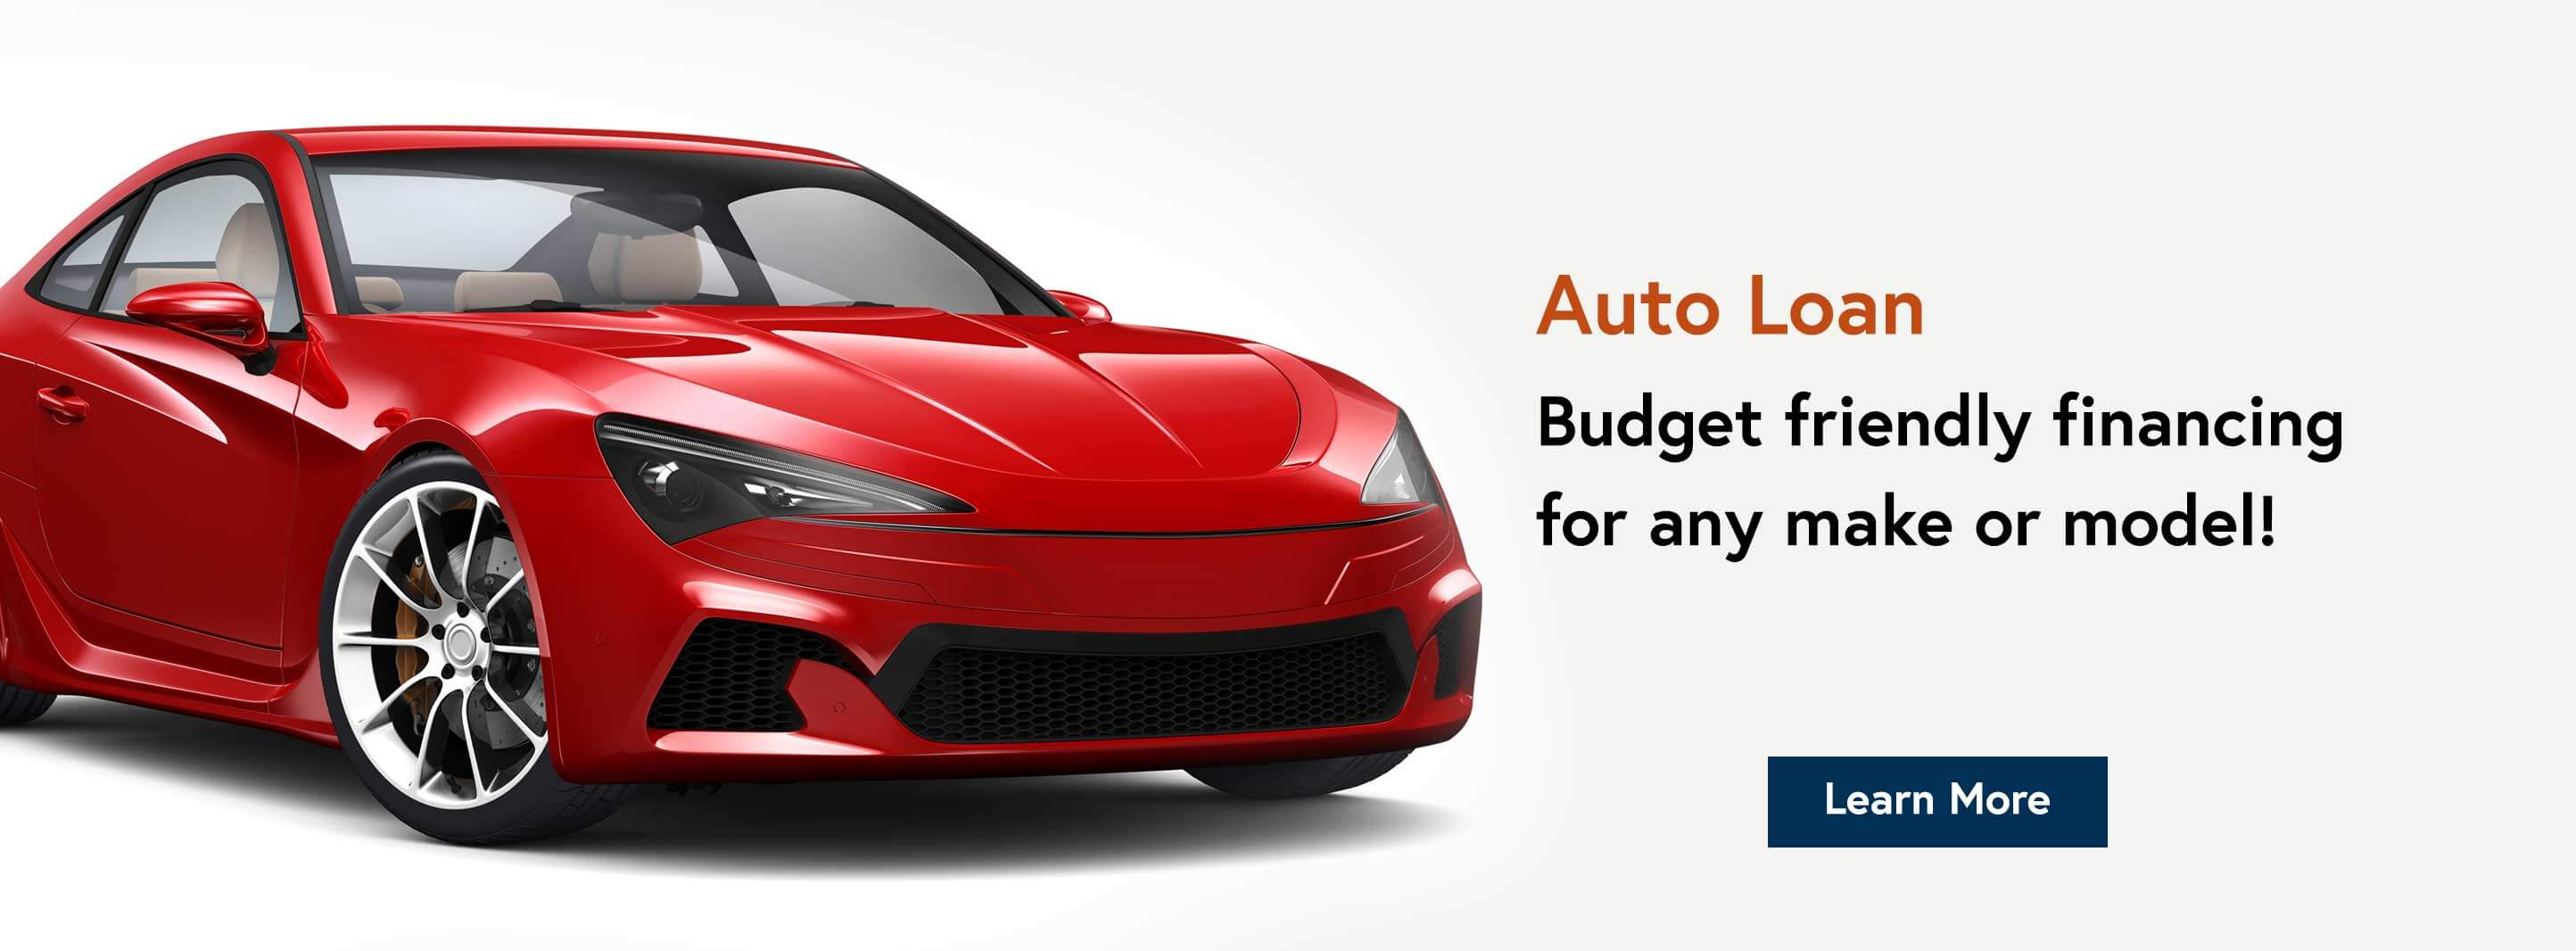 Auto Loan. Budget friendly financing for any make or model! Learn More.